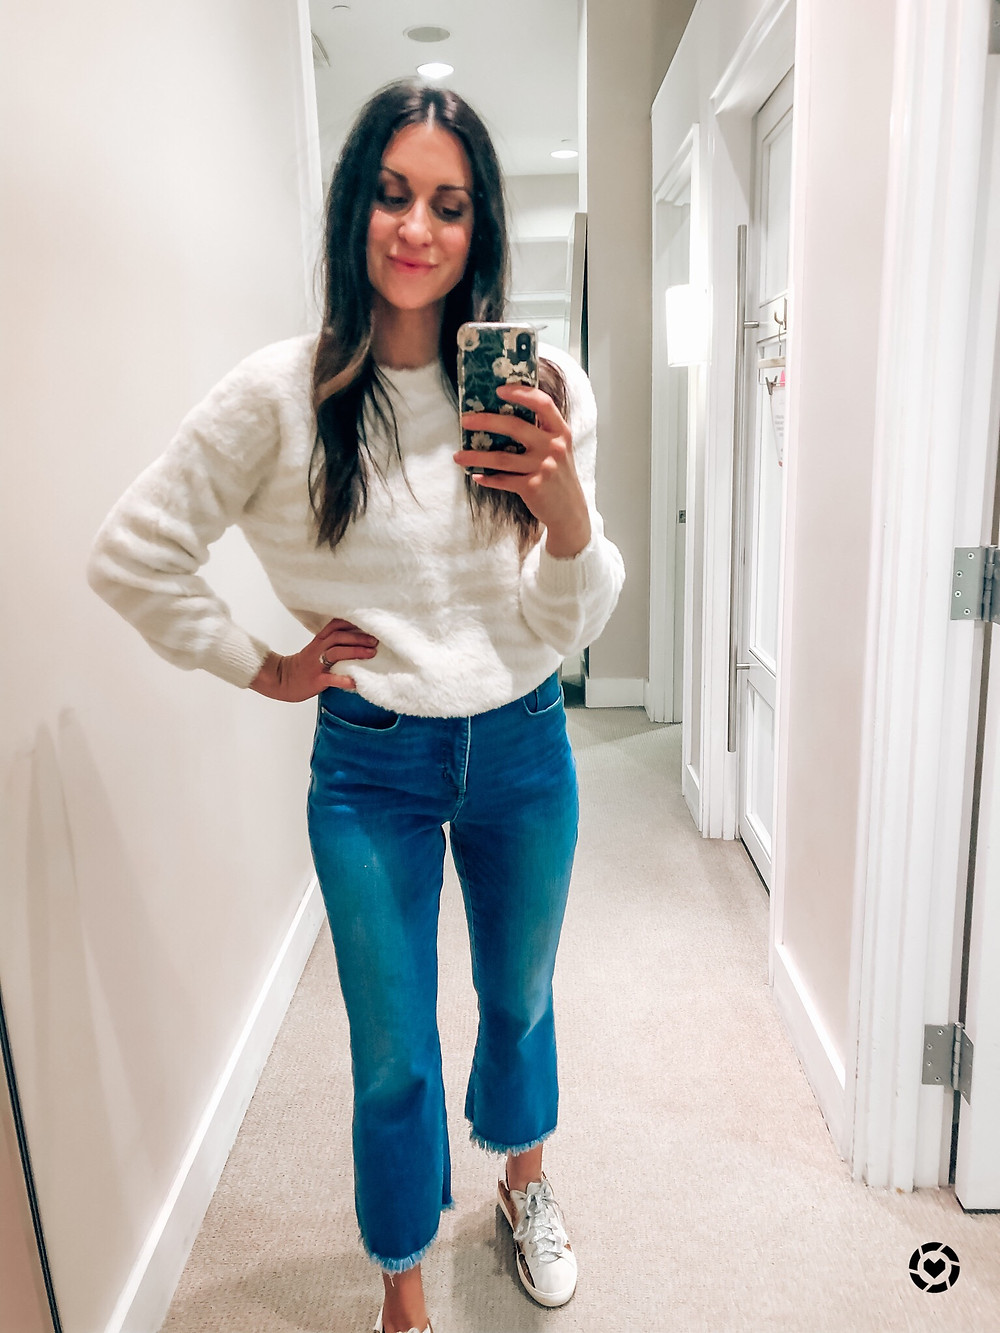 White Zebra Sweater LOFT Cropped Flare Jeans OKC Blogger Courtney Garrison